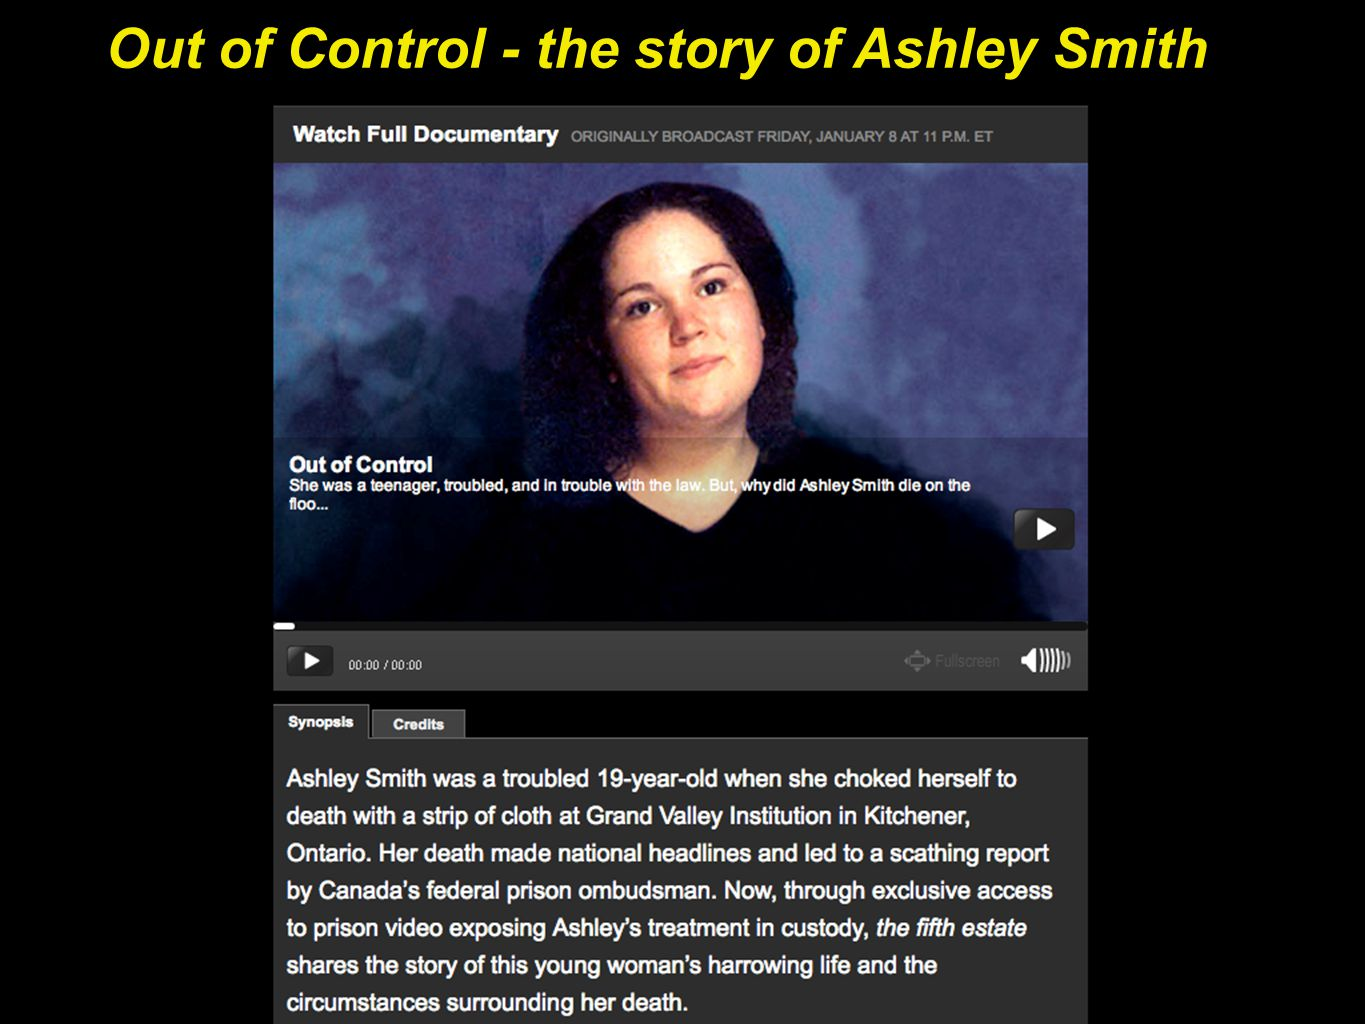 Out of Control - the story of Ashley Smith